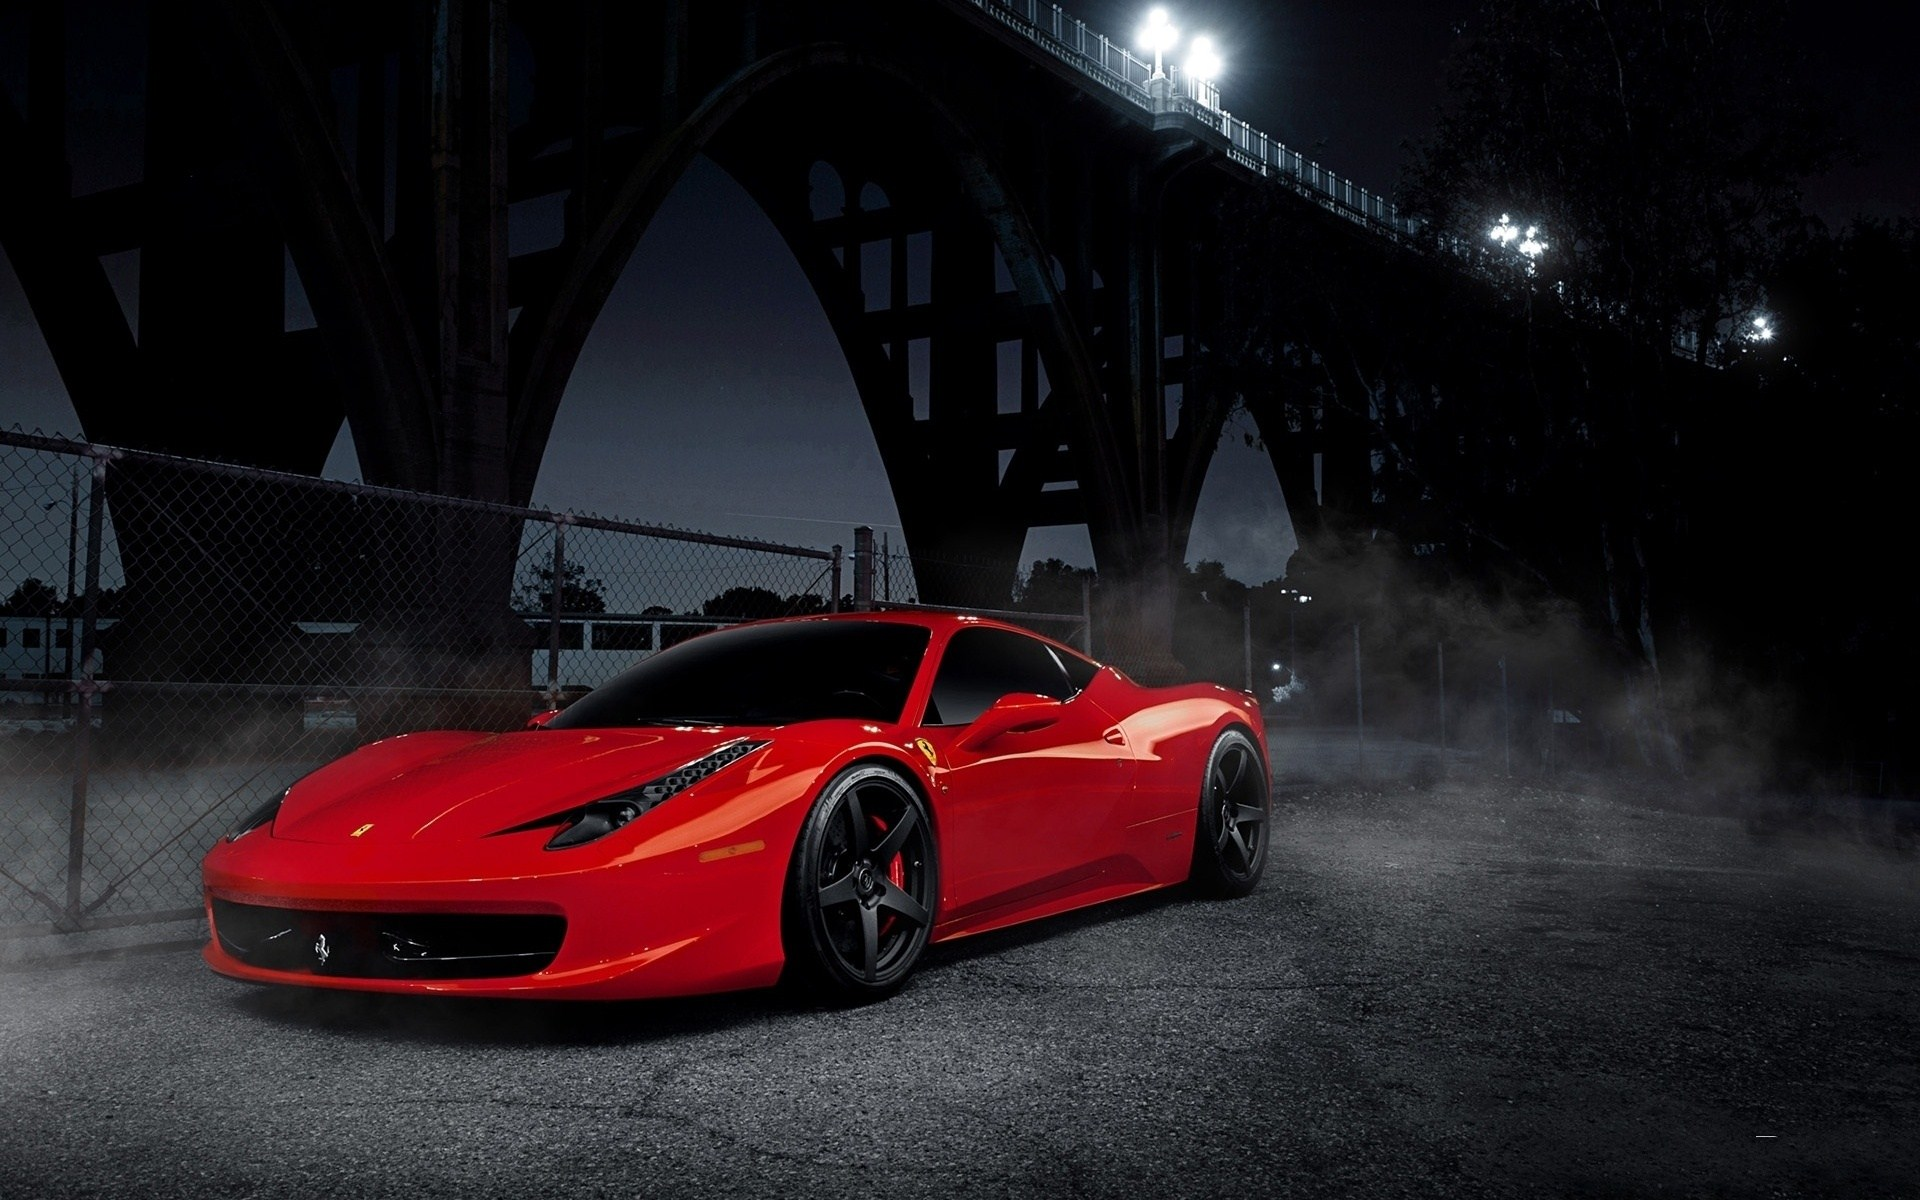 Great Wallpaper Night Ferrari - Ferrari-458-Wallpaper-07-1920x1200  HD-902392.jpg